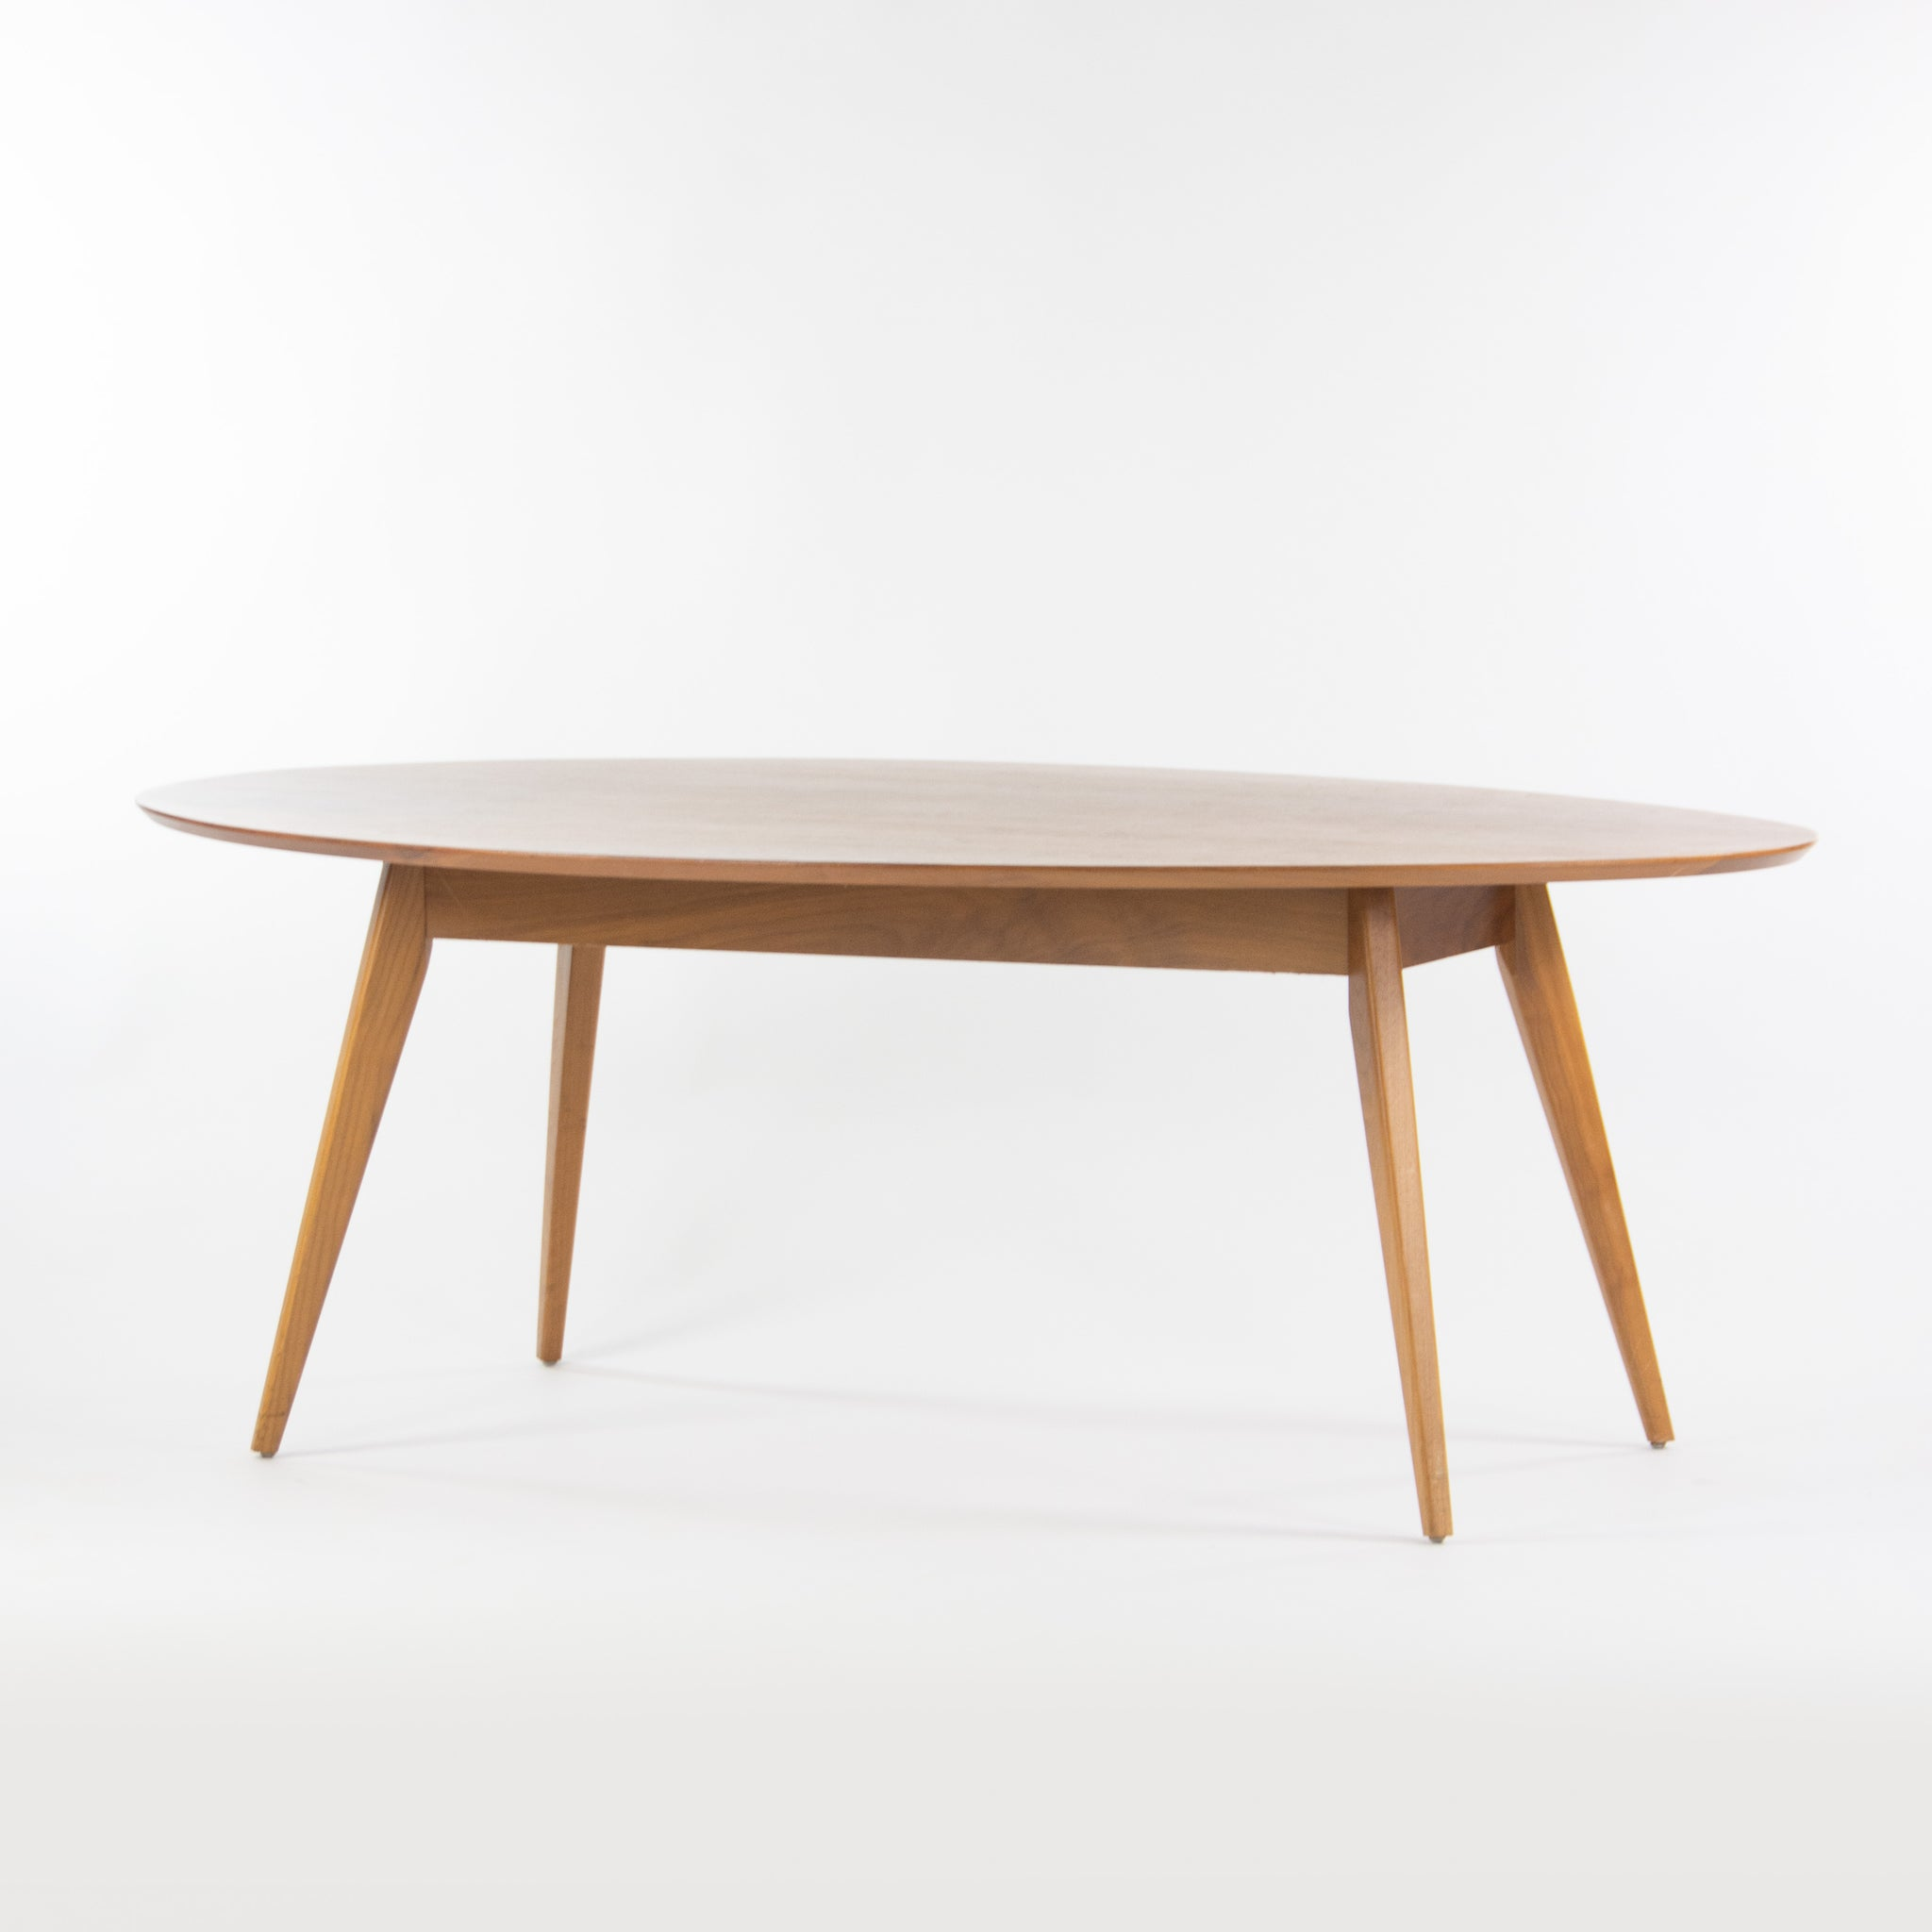 Custom Jens Risom Knoll 78 in Oval Walnut Dining Conference Table